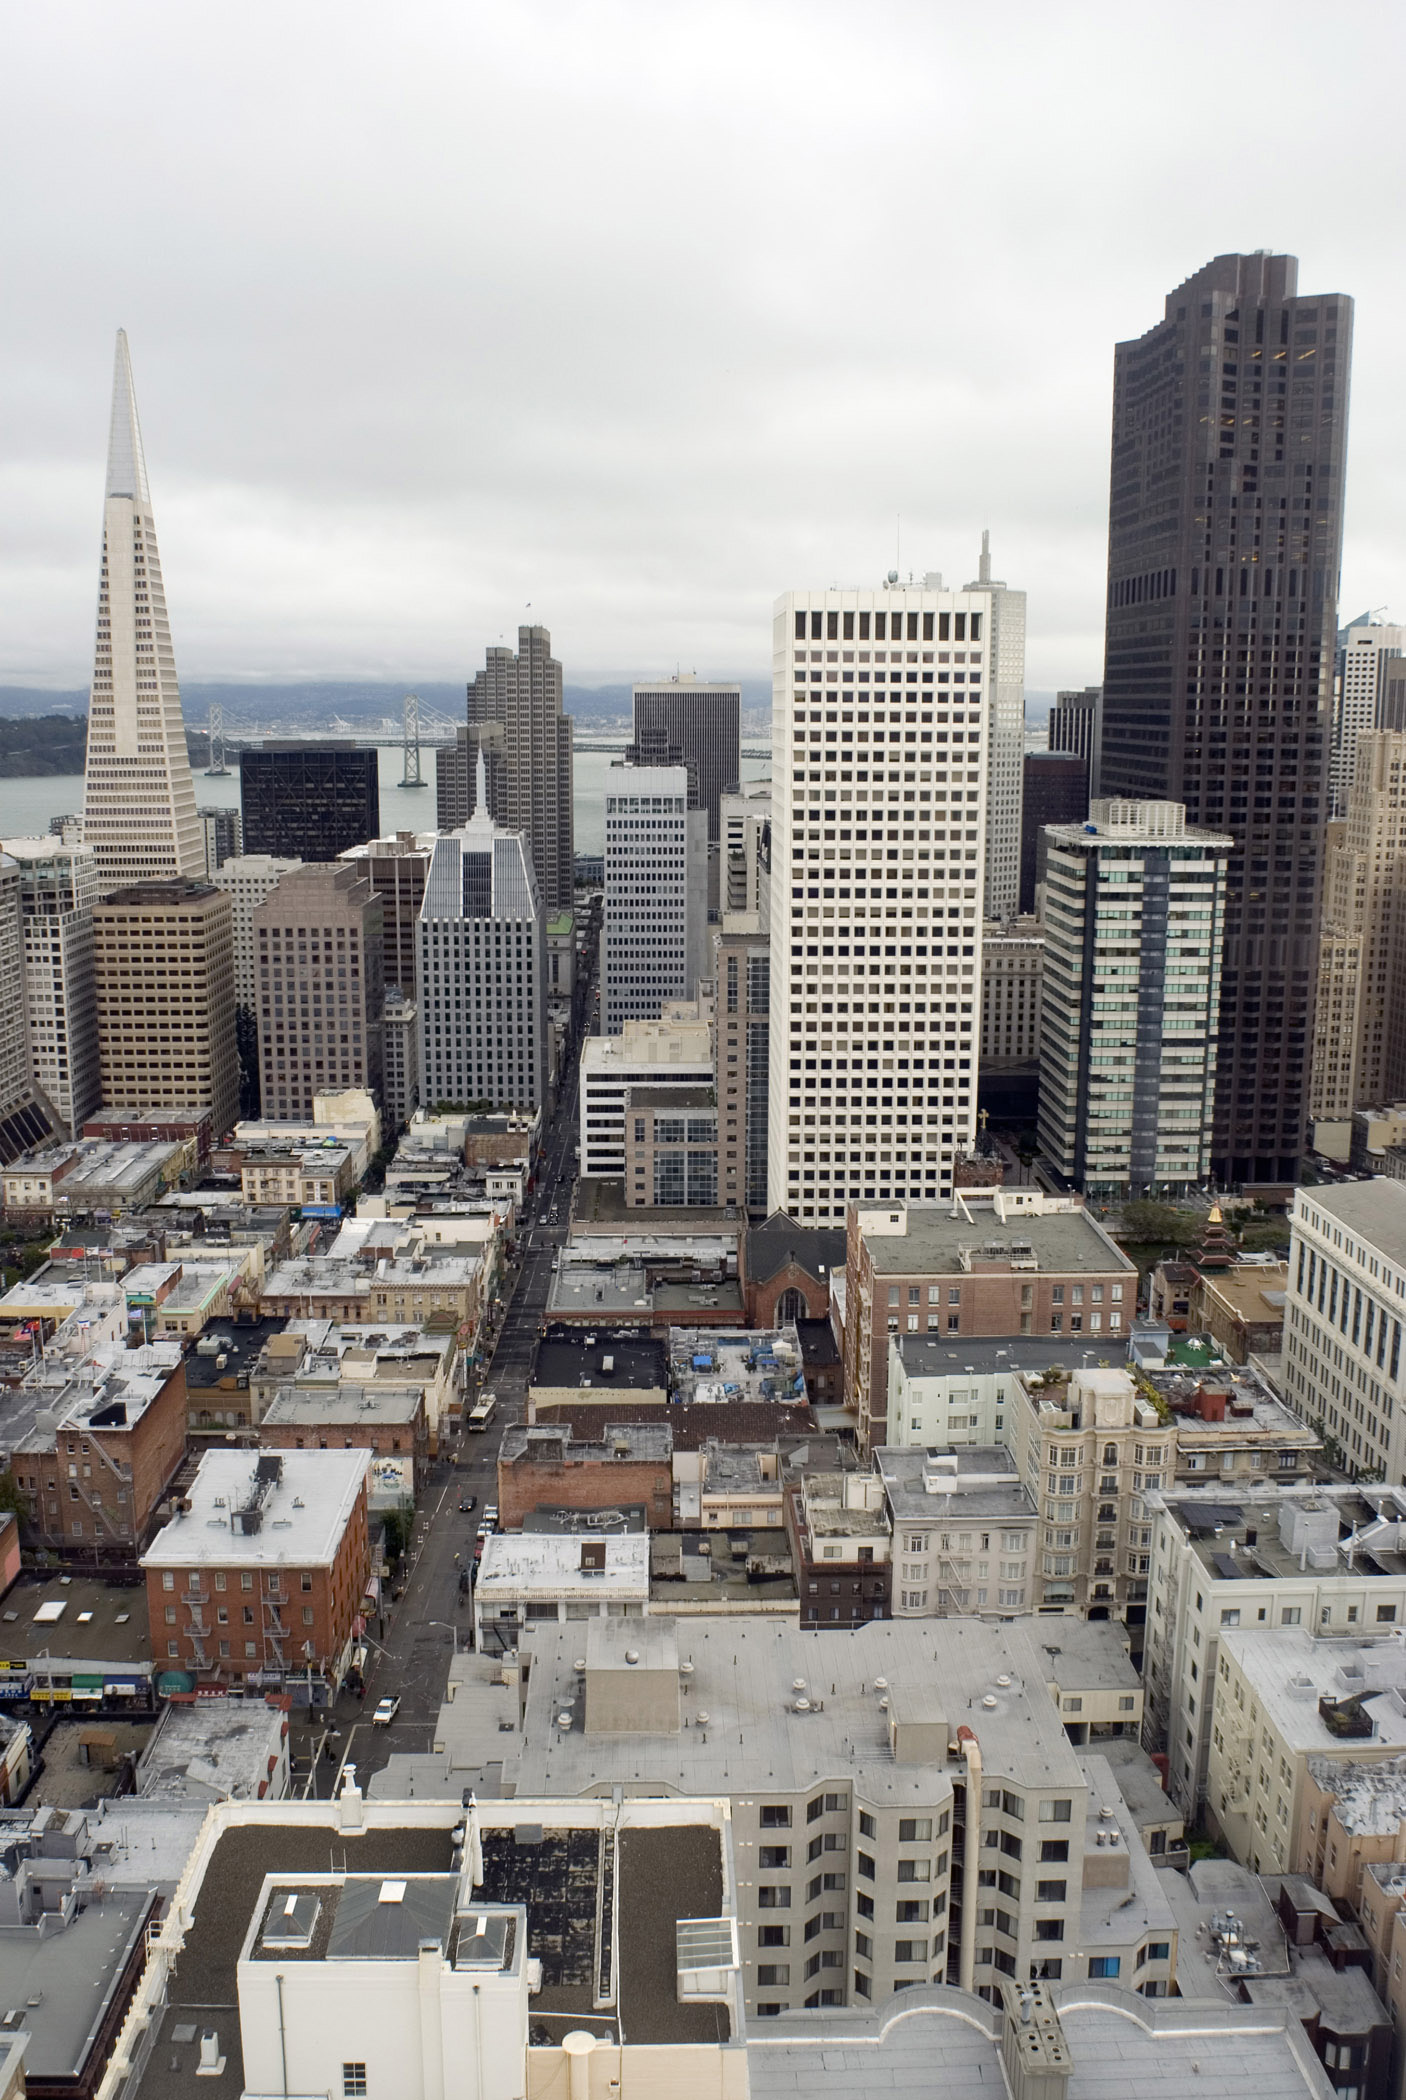 Architectural City Buildings at Downtown San Francisco in Aerial View. Captured on Gray Sky Background.